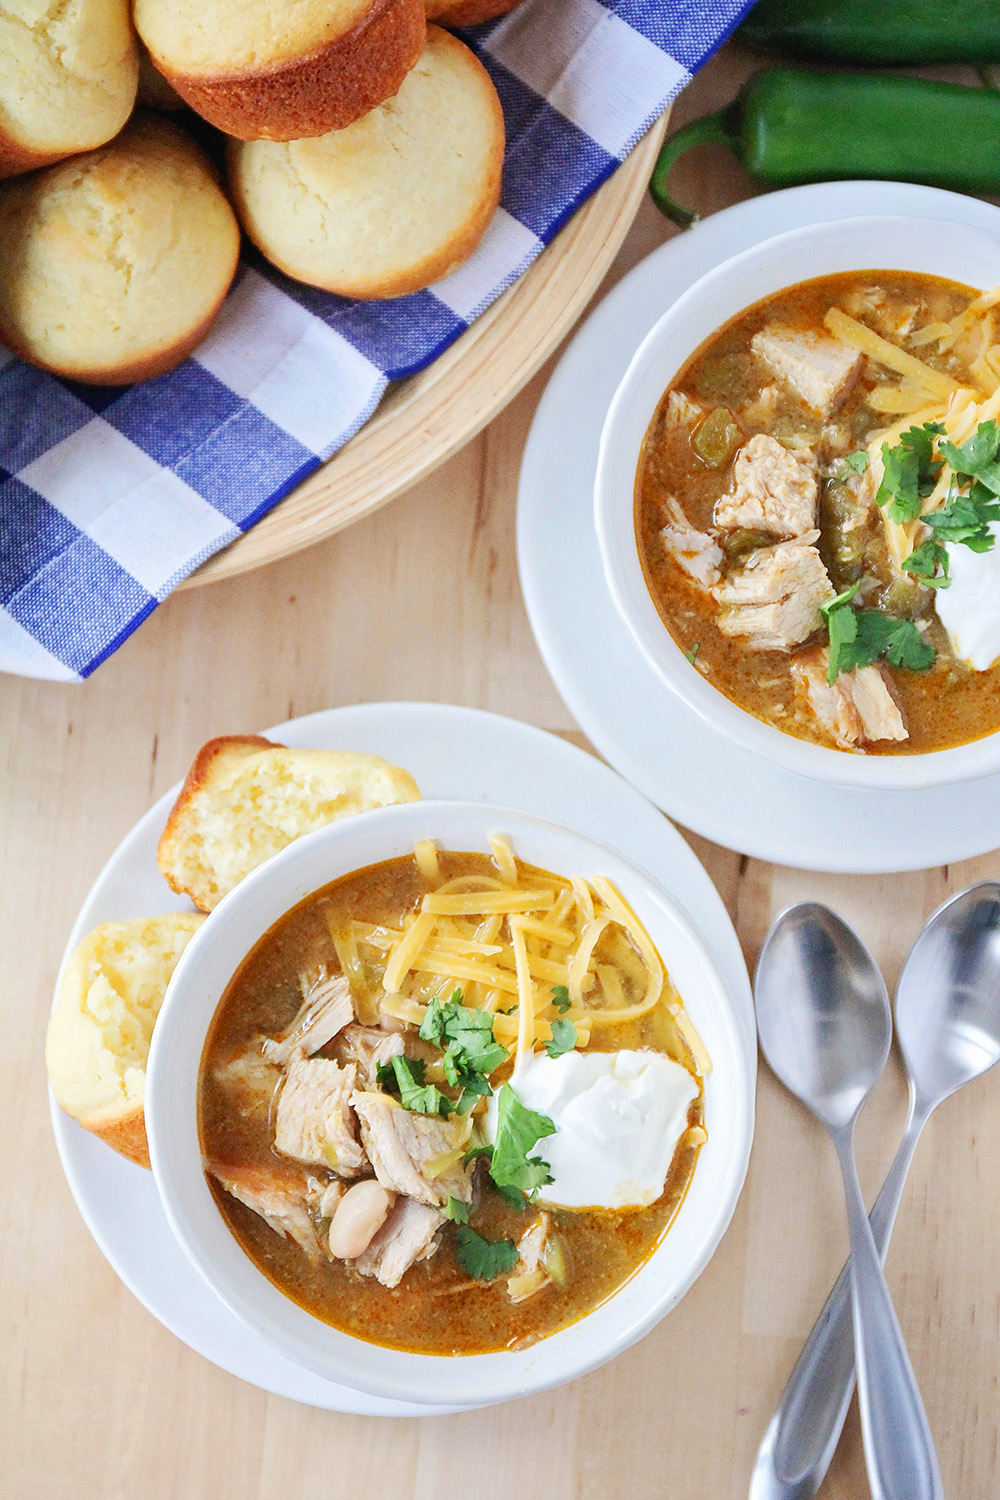 This savory pork verde chili is full of flavor and so hearty and delicious!